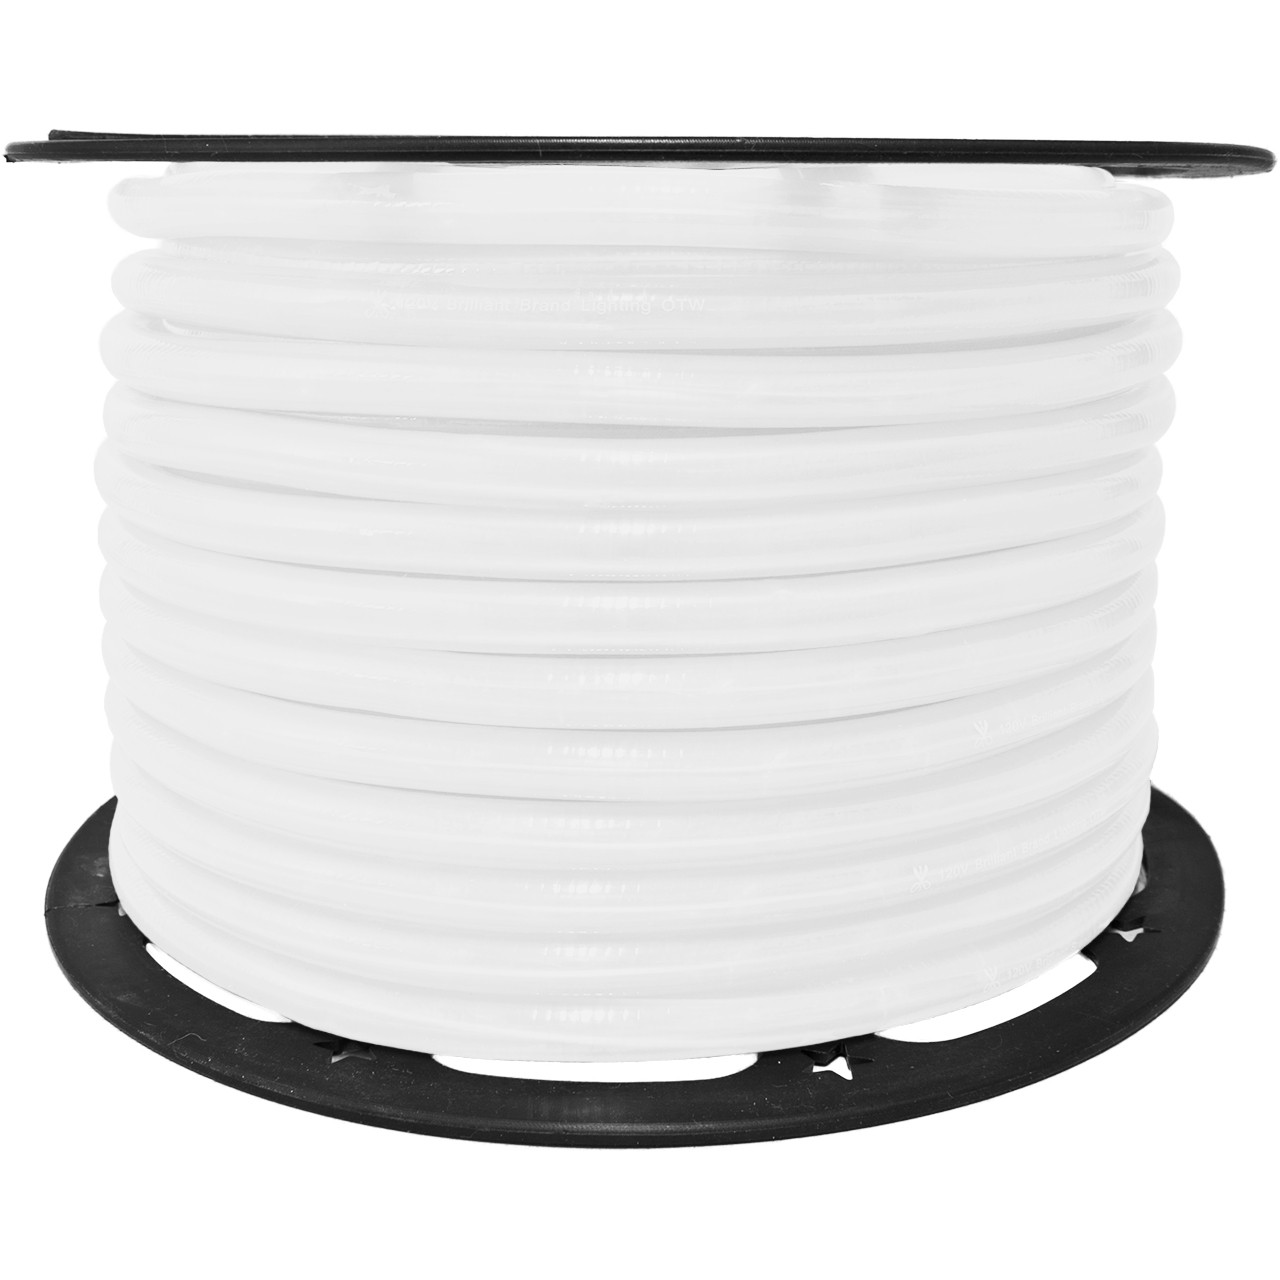 Pearl white incandescent rope light 120 volt 12 inch 150 feet pearl white incandescent rope light 120 volt 12 inch 150 feet aloadofball Image collections